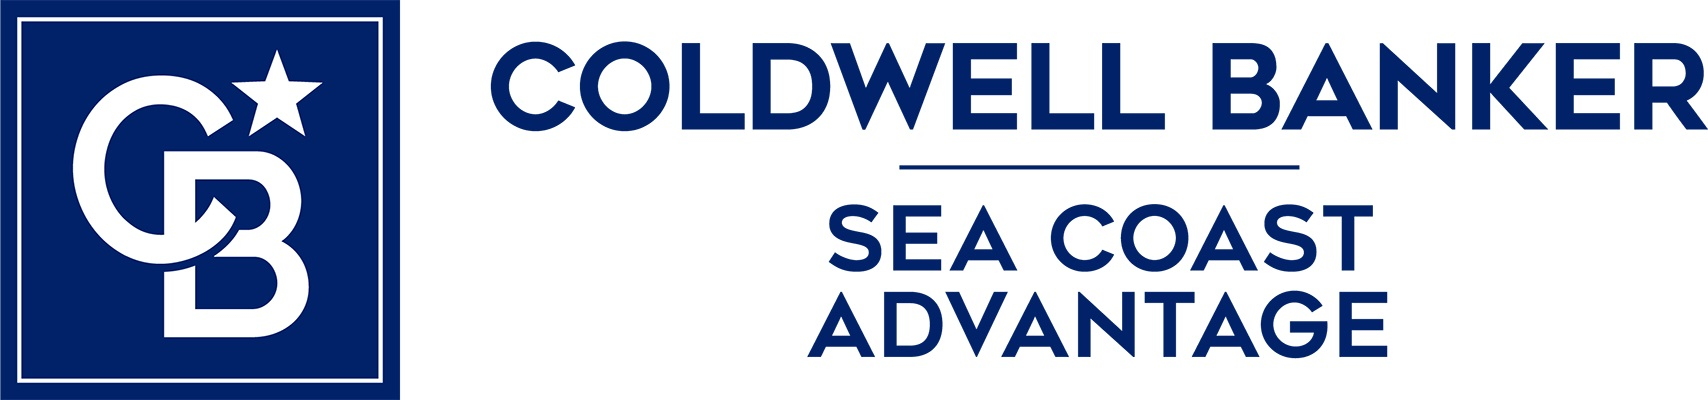 Shanon Ives - Coldwell Banker Sea Coast Advantage Realty Logo